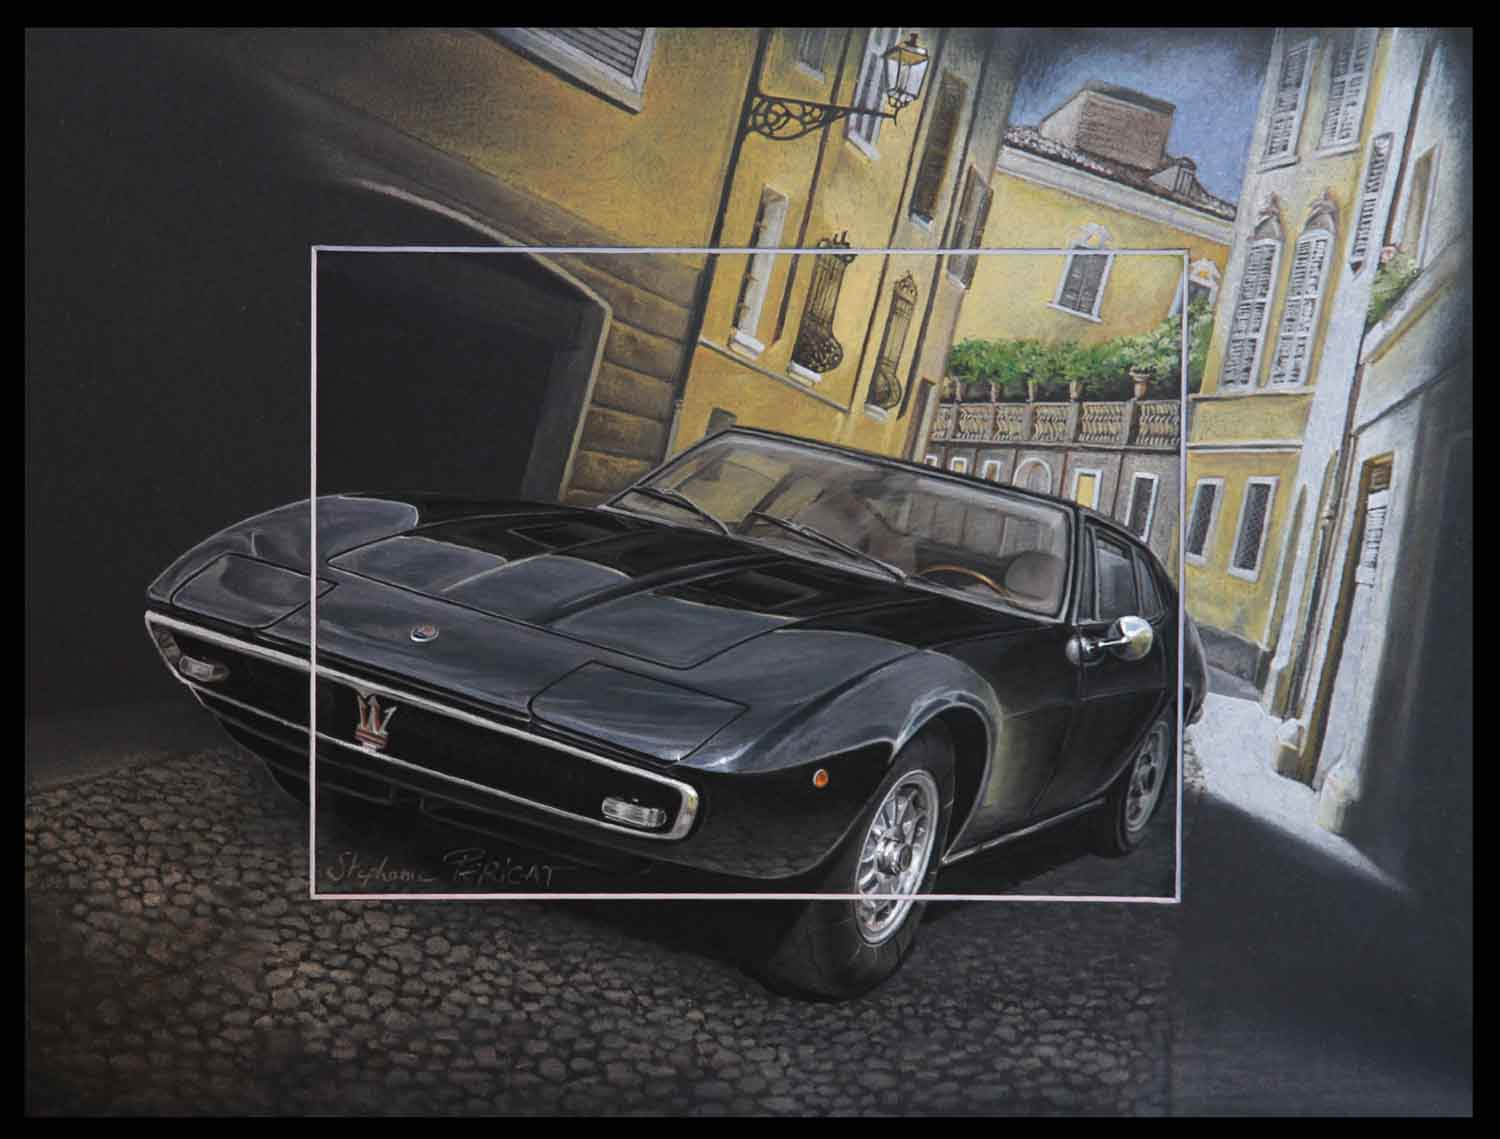 Estate Maserati Giblhi -  30x40cm - AV for sale